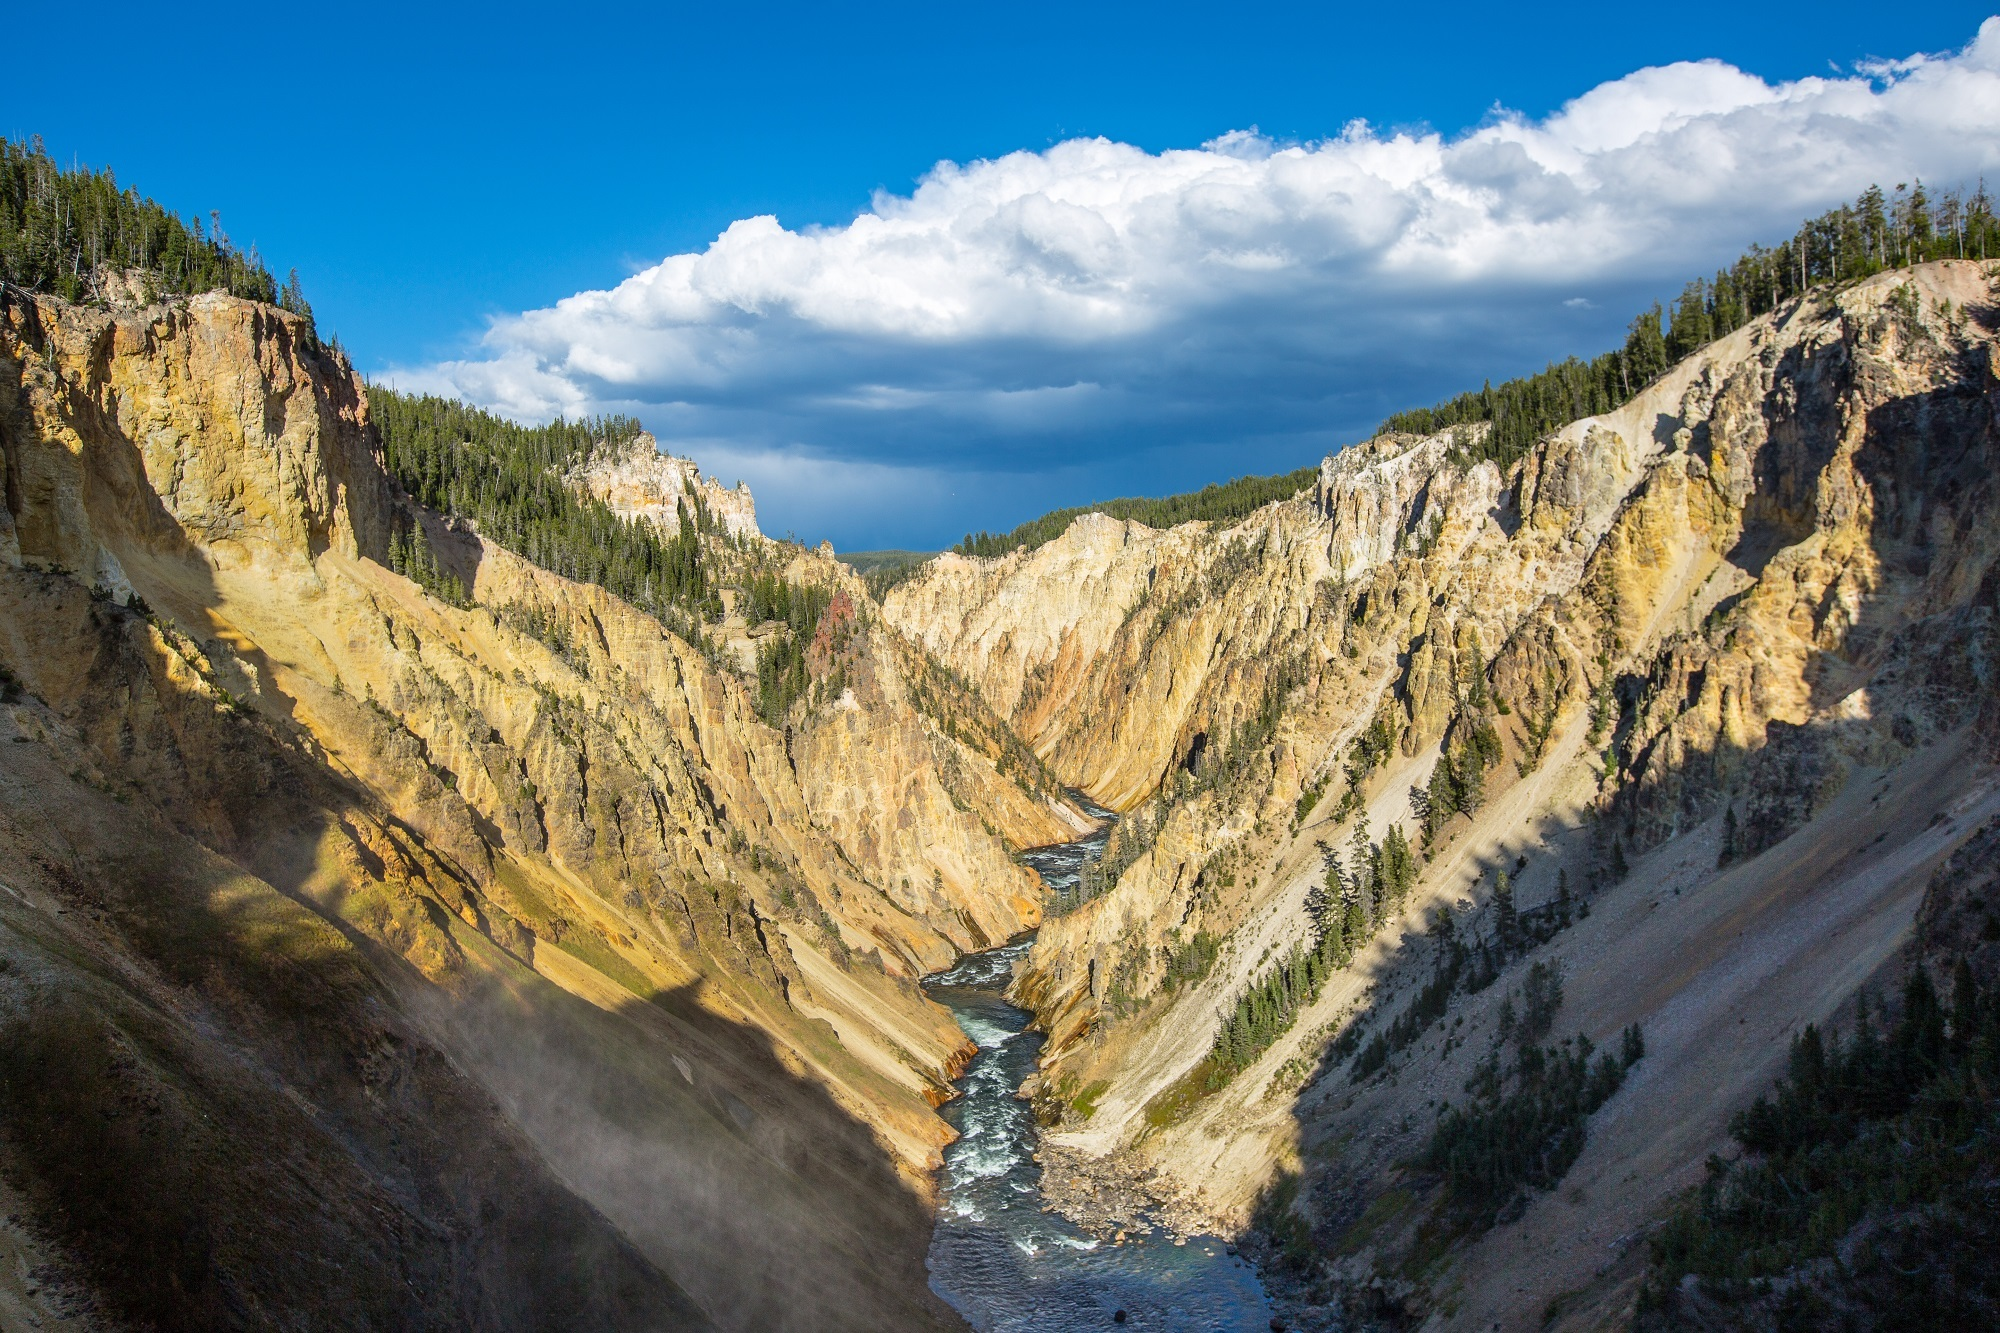 River in yellowstone National Park HD Wallpaper Background Image 2000x1333